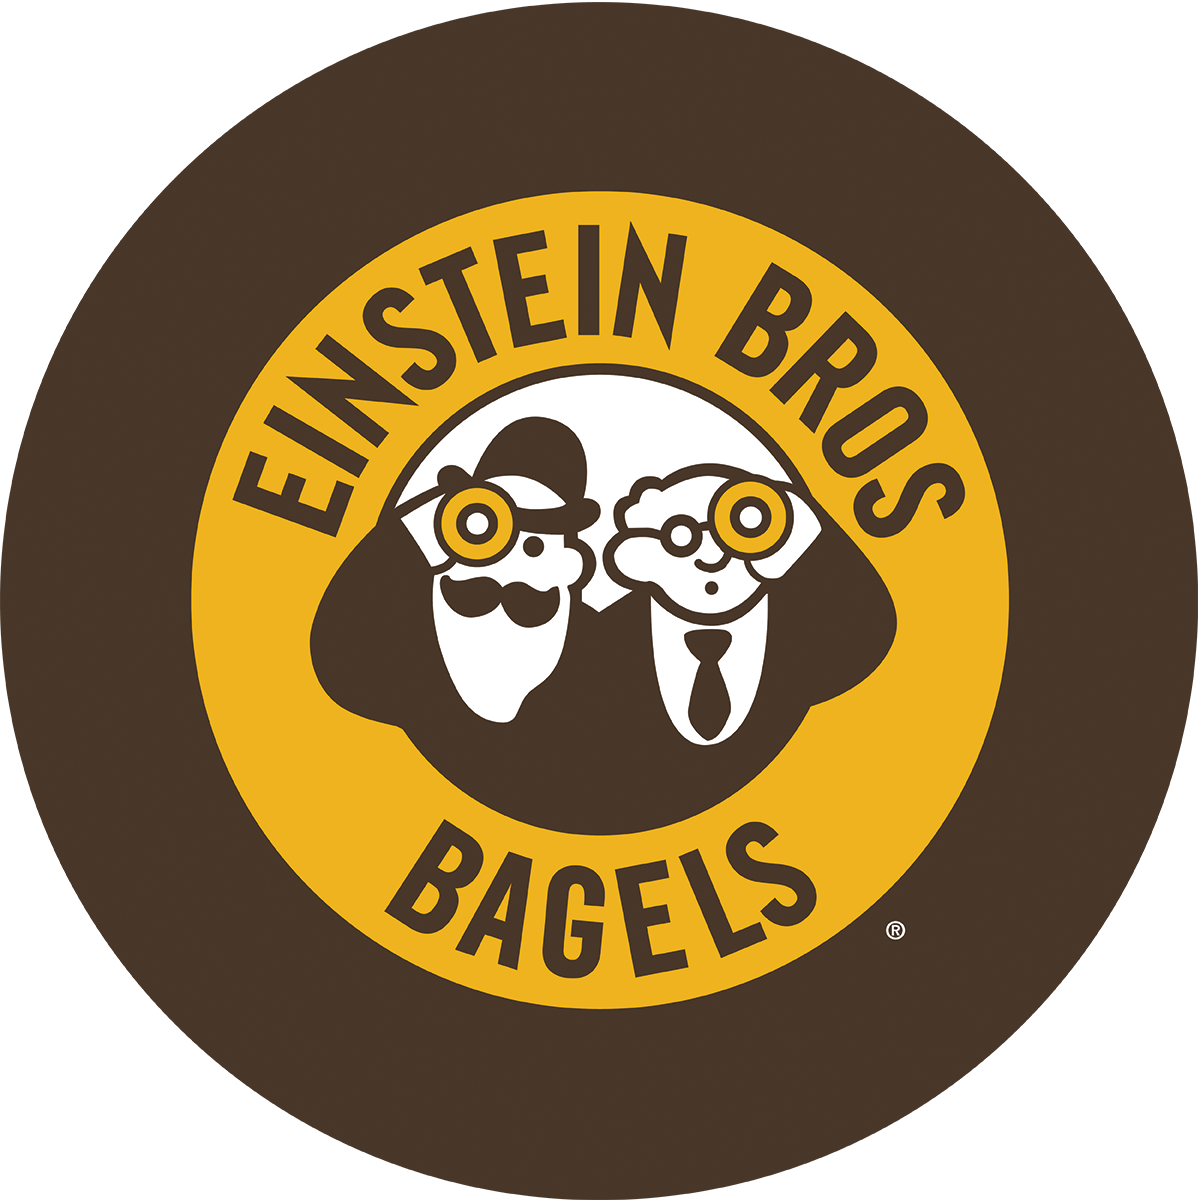 Einstein Bros. Bagels - Spokane, WA 99201 - (509)290-6613 | ShowMeLocal.com